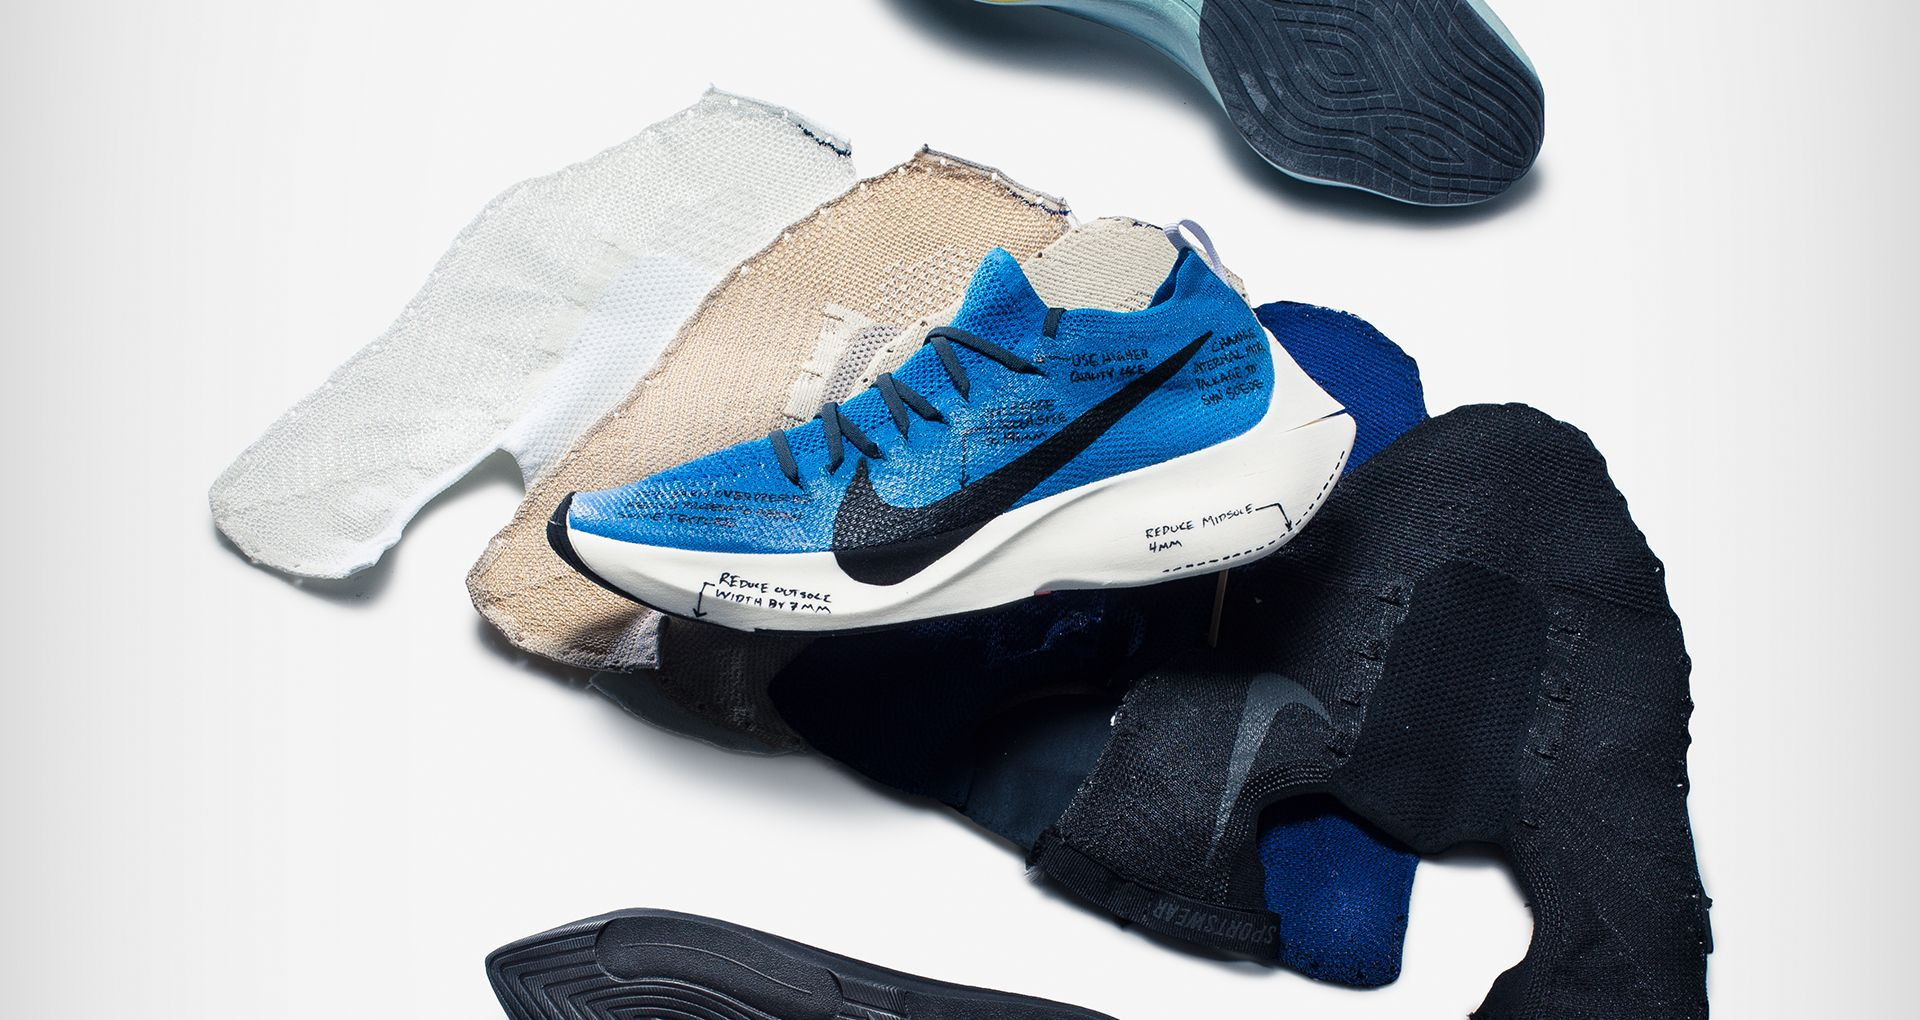 dcd8c712d3005 Behind the Design of the Nike React Vapor Street Flyknit - WearTesters